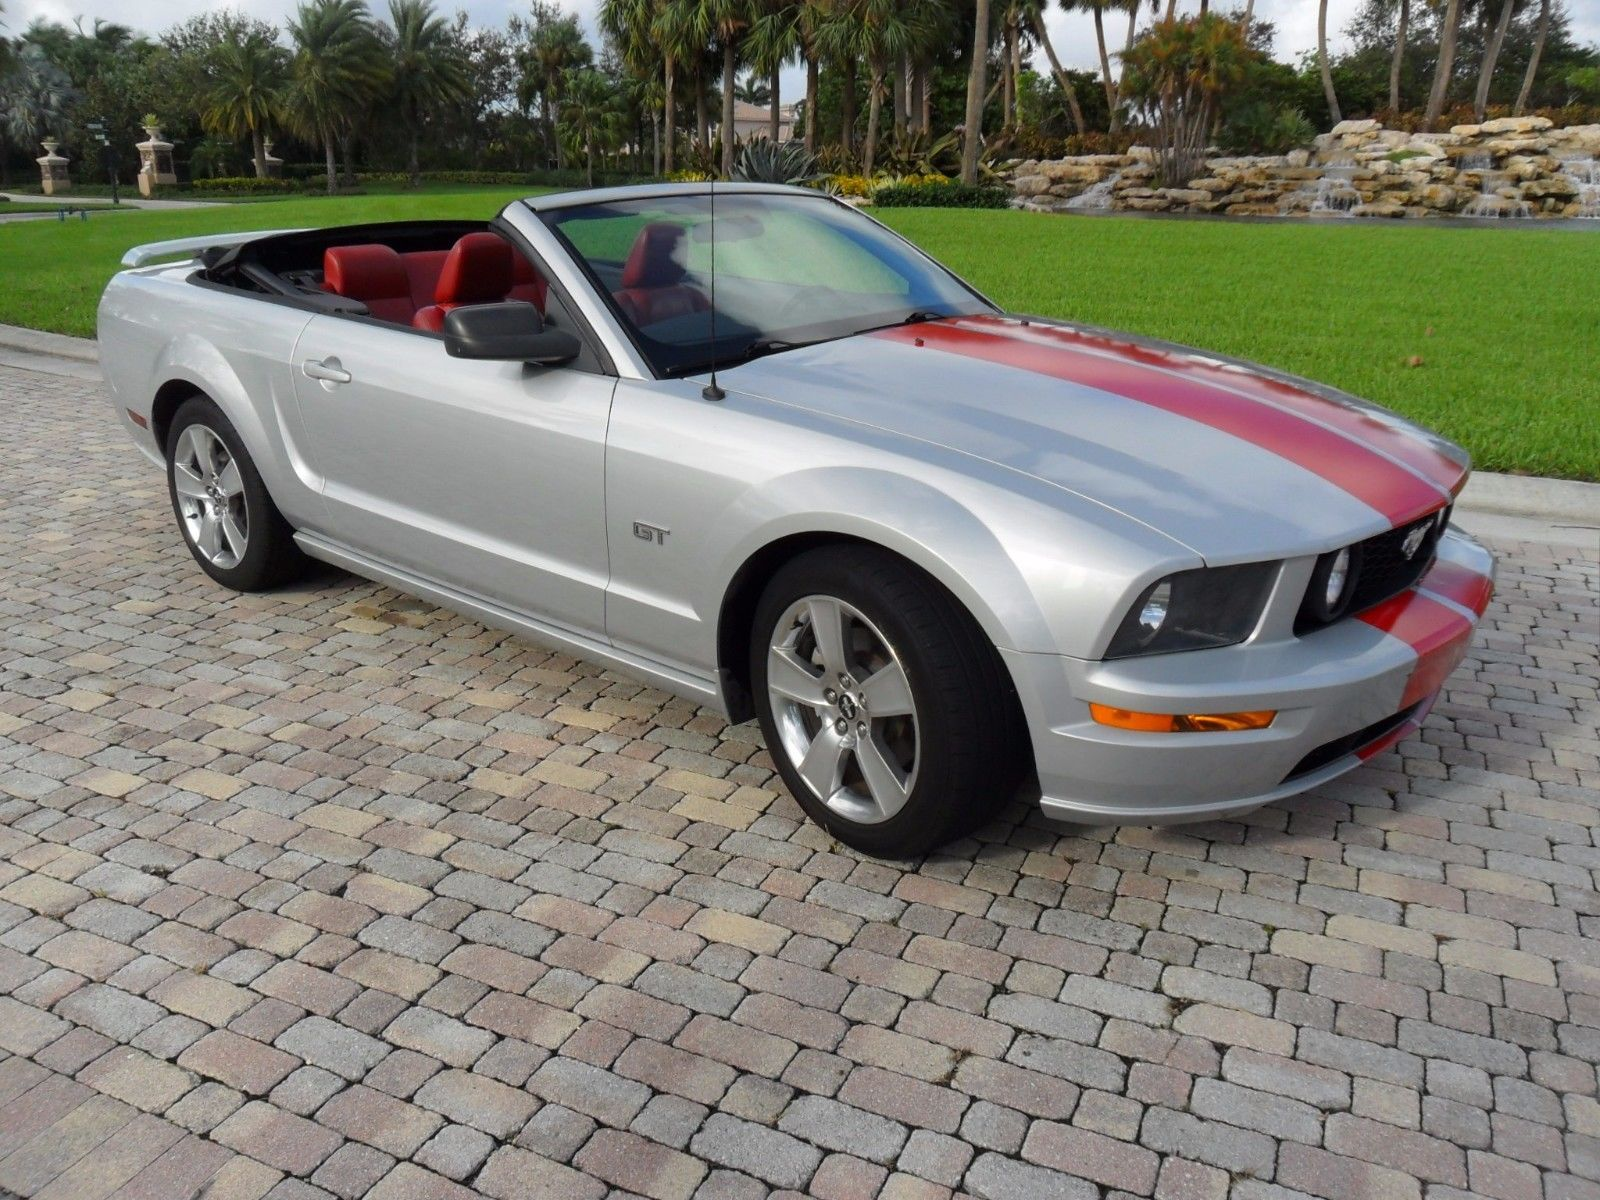 Nice Awesome 2007 Ford Mustang GT PREMIUM 2007 MUSTANG GT RARE MANUAL  SILVER WITH BRIGHT RED LEATHER INTERIOR AND STRIPES 2018